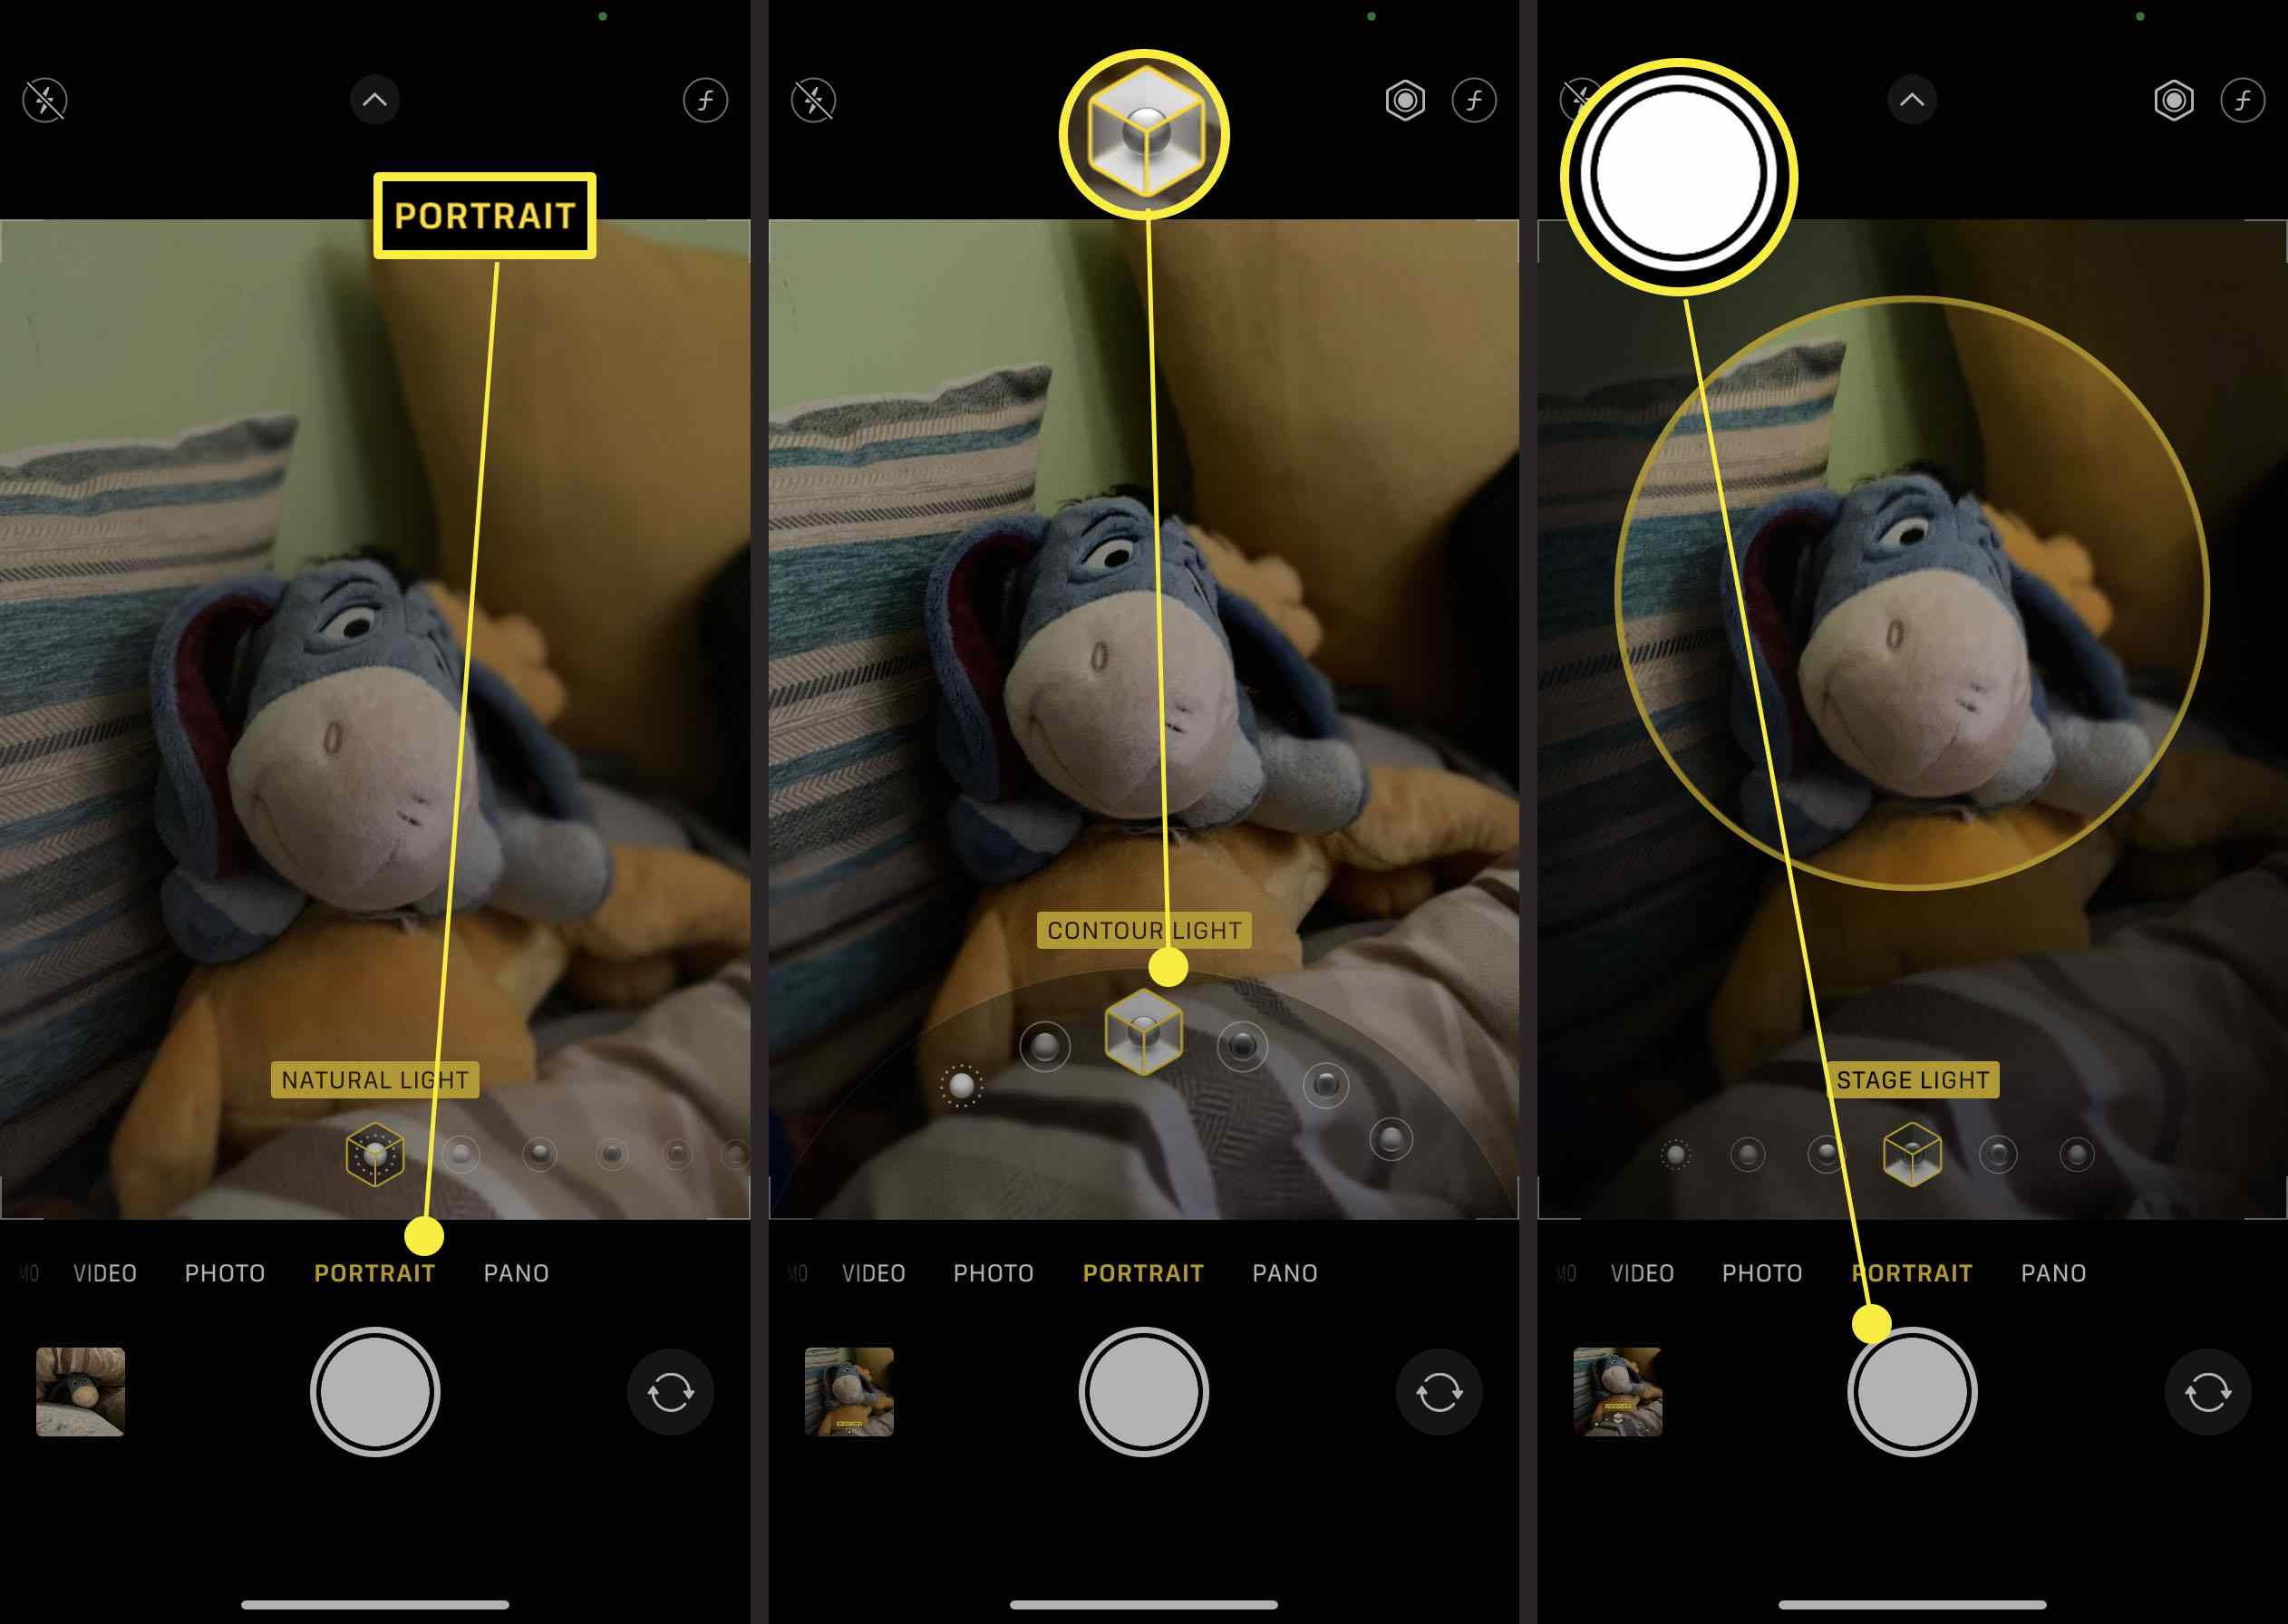 Steps required to take a photo in portrait mode on iPhone and adjust the background